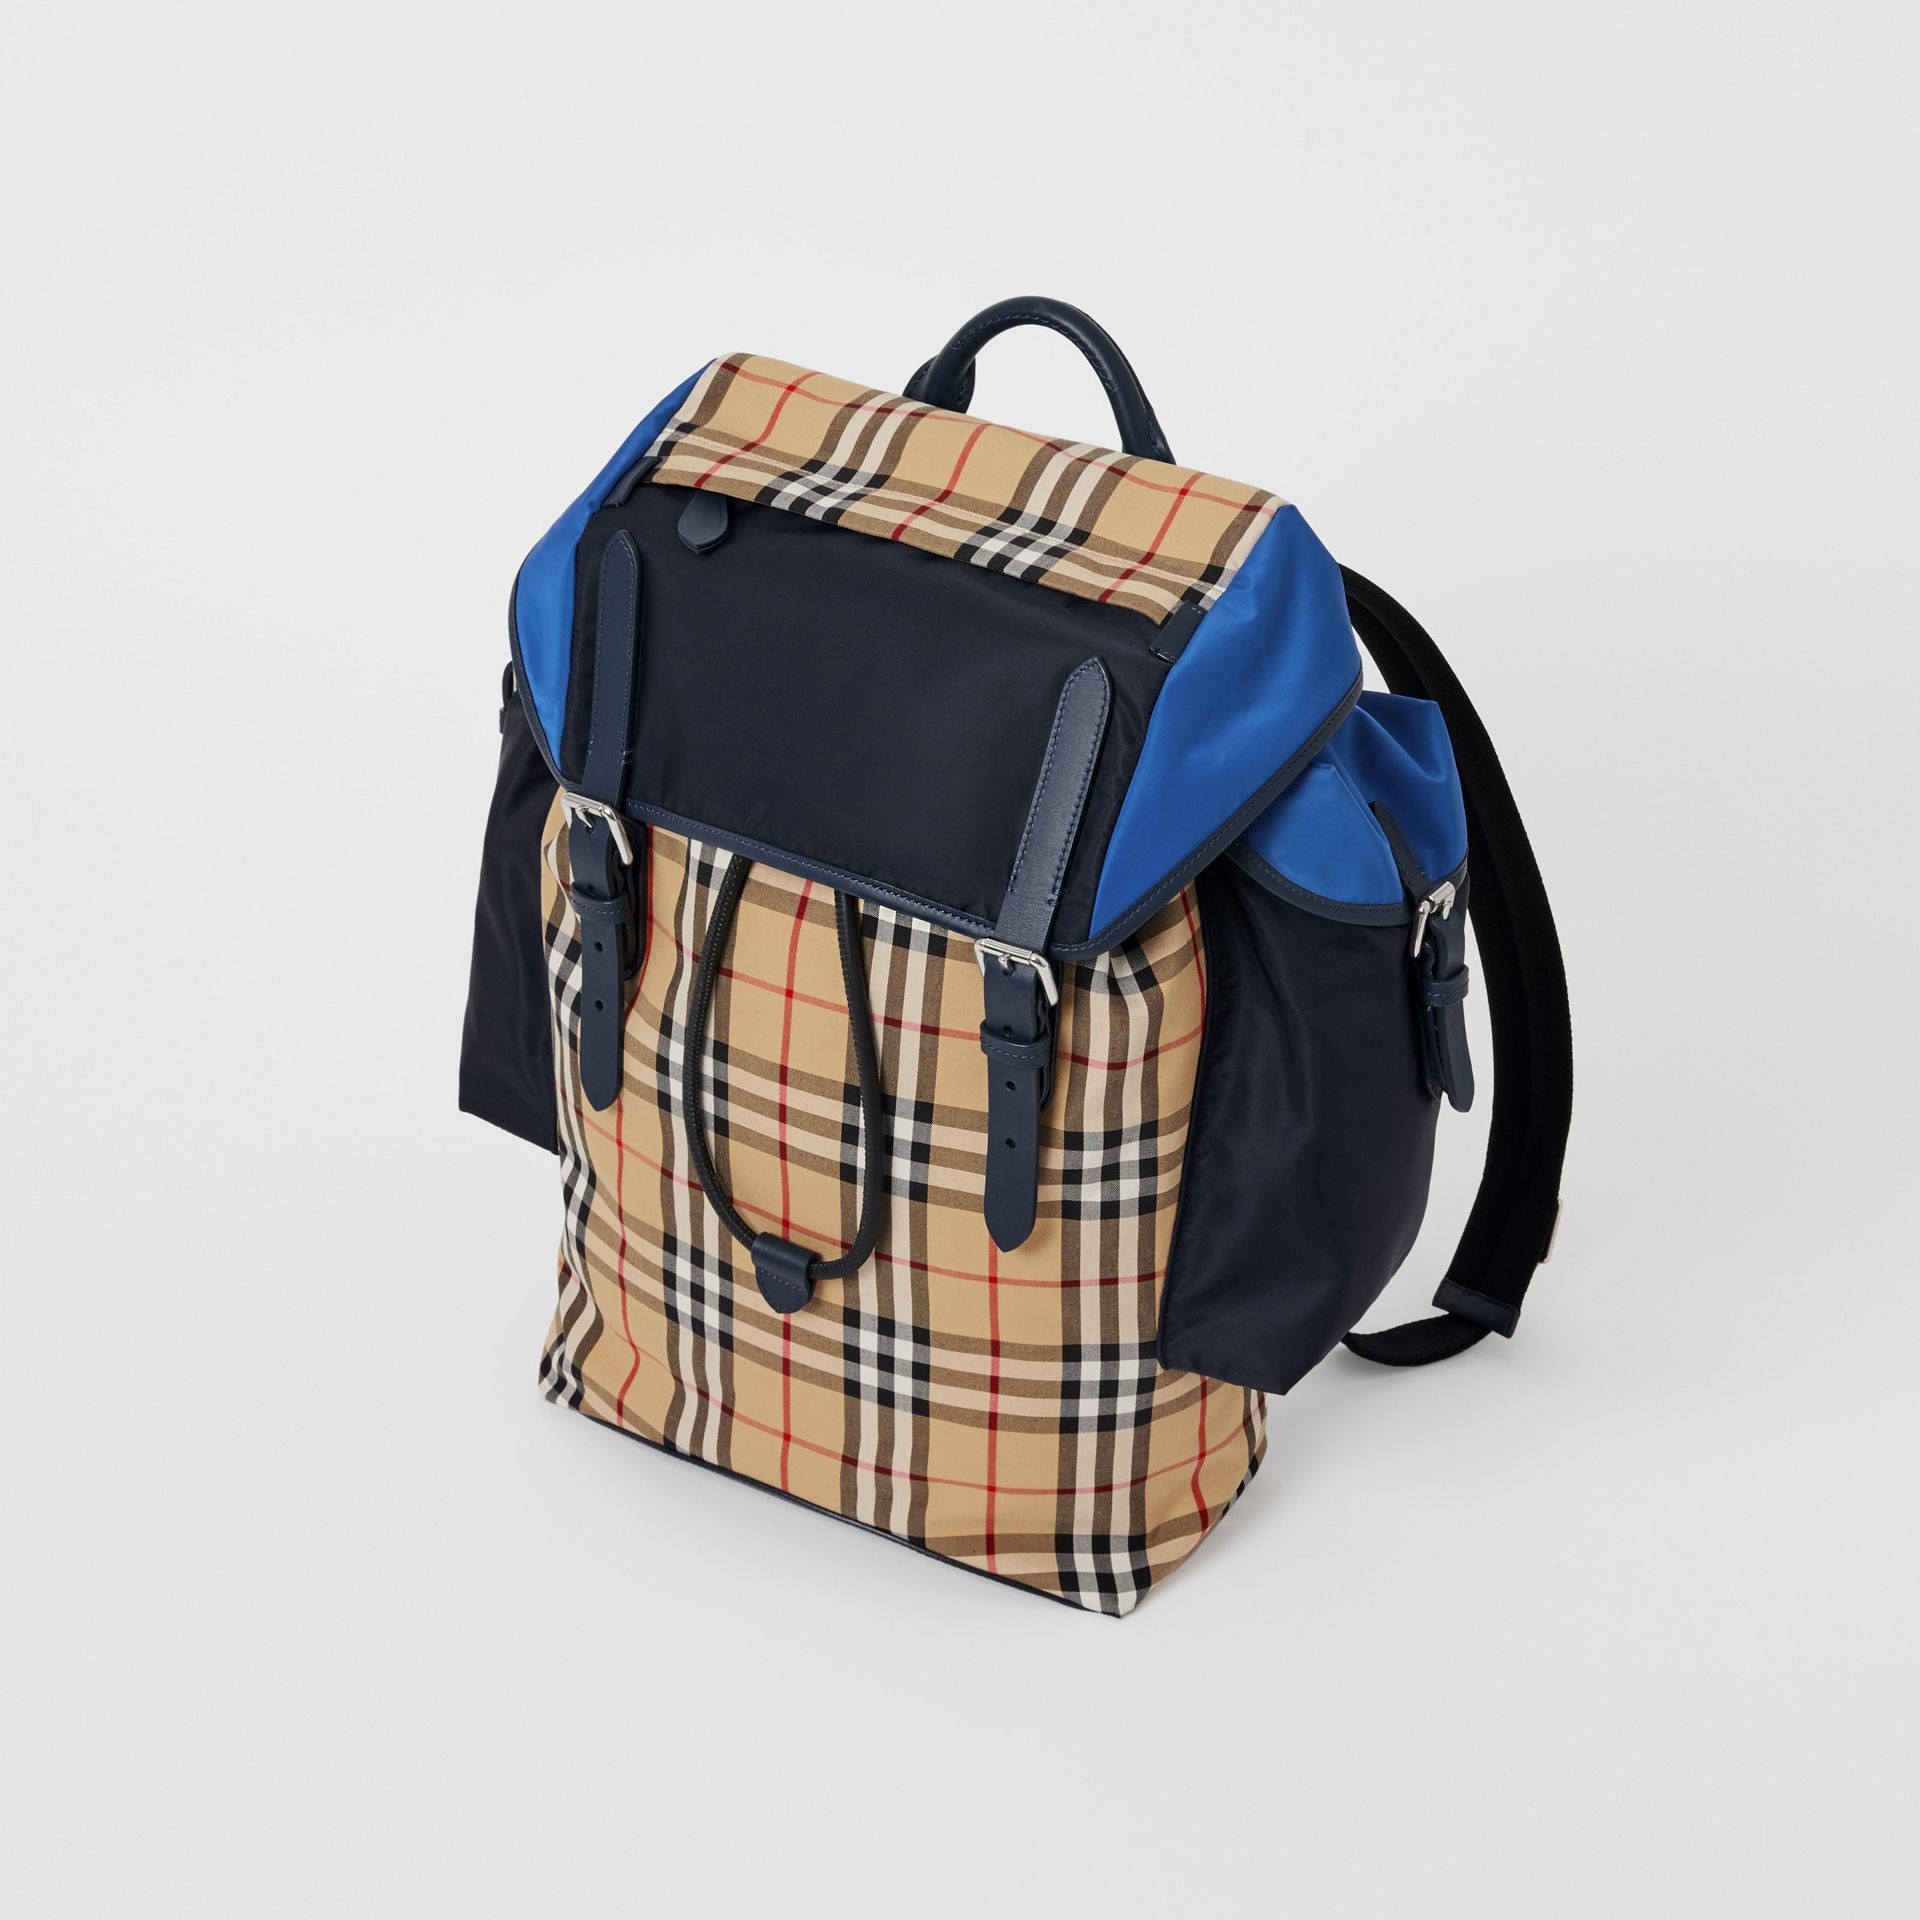 Sac à dos en cuir à motif Vintage check color-block (Marine) - Homme | Burberry - photo de la galerie 7